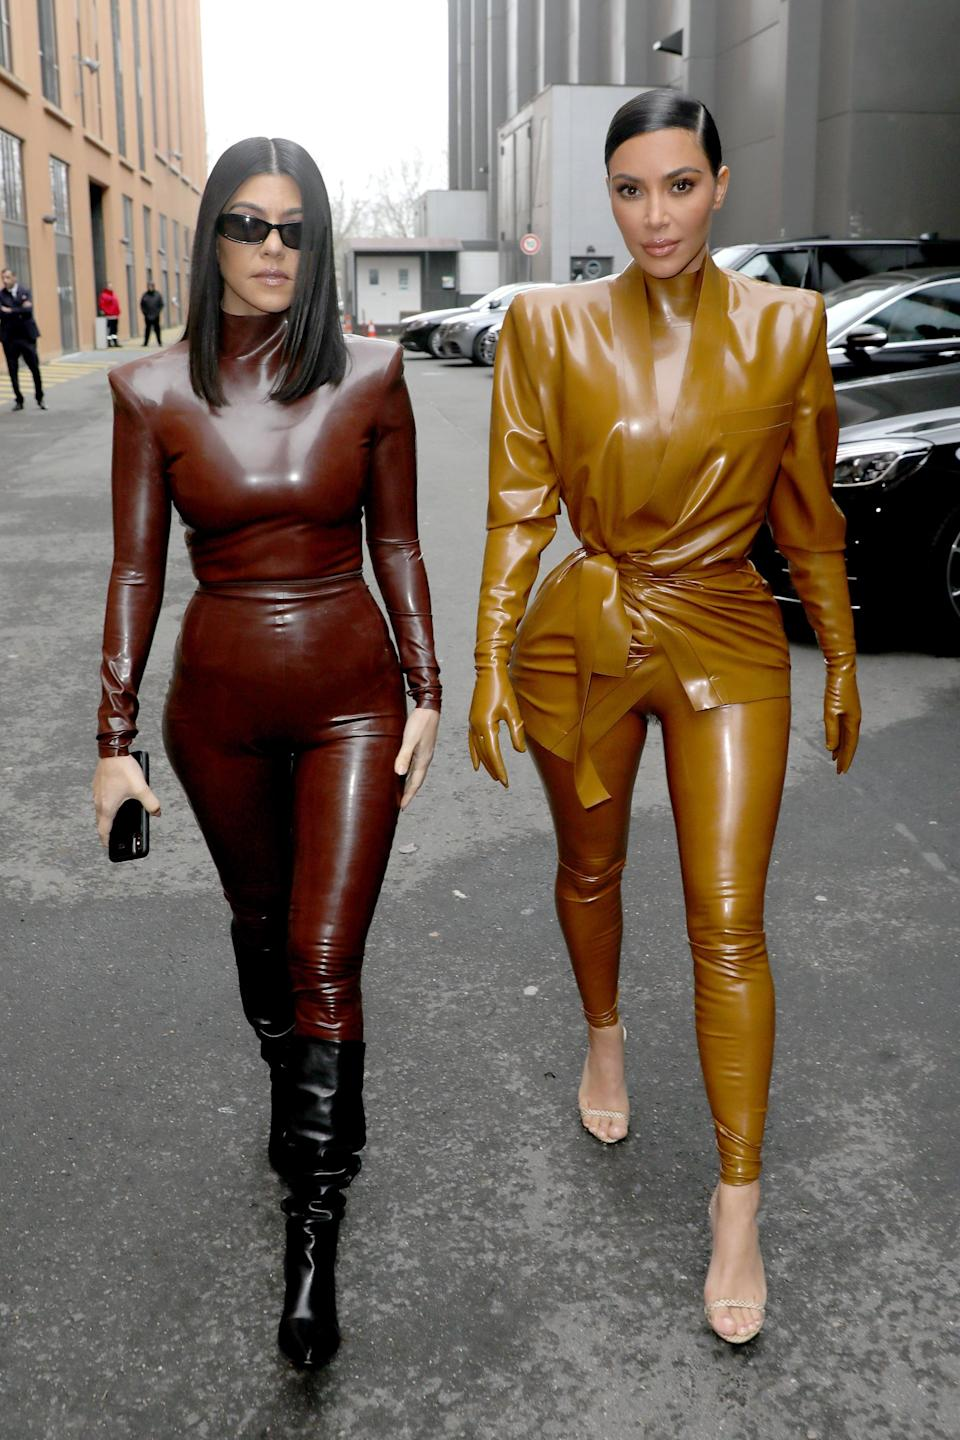 """<p>While 2020 might not have included many red carpets, that didn't stop the family from continuing to serve up looks, like these head-to-toe latex outfits. <strong>KUWTK</strong> viewers got a hilarious look at how hard it was for <a href=""""https://www.popsugar.com/fashion/kim-kardashian-latex-balmain-outfit-video-clip-47332225"""" class=""""link rapid-noclick-resp"""" rel=""""nofollow noopener"""" target=""""_blank"""" data-ylk=""""slk:Kim to get into this Balmain outfit before the show"""">Kim to get into this Balmain outfit before the show</a>.</p>"""